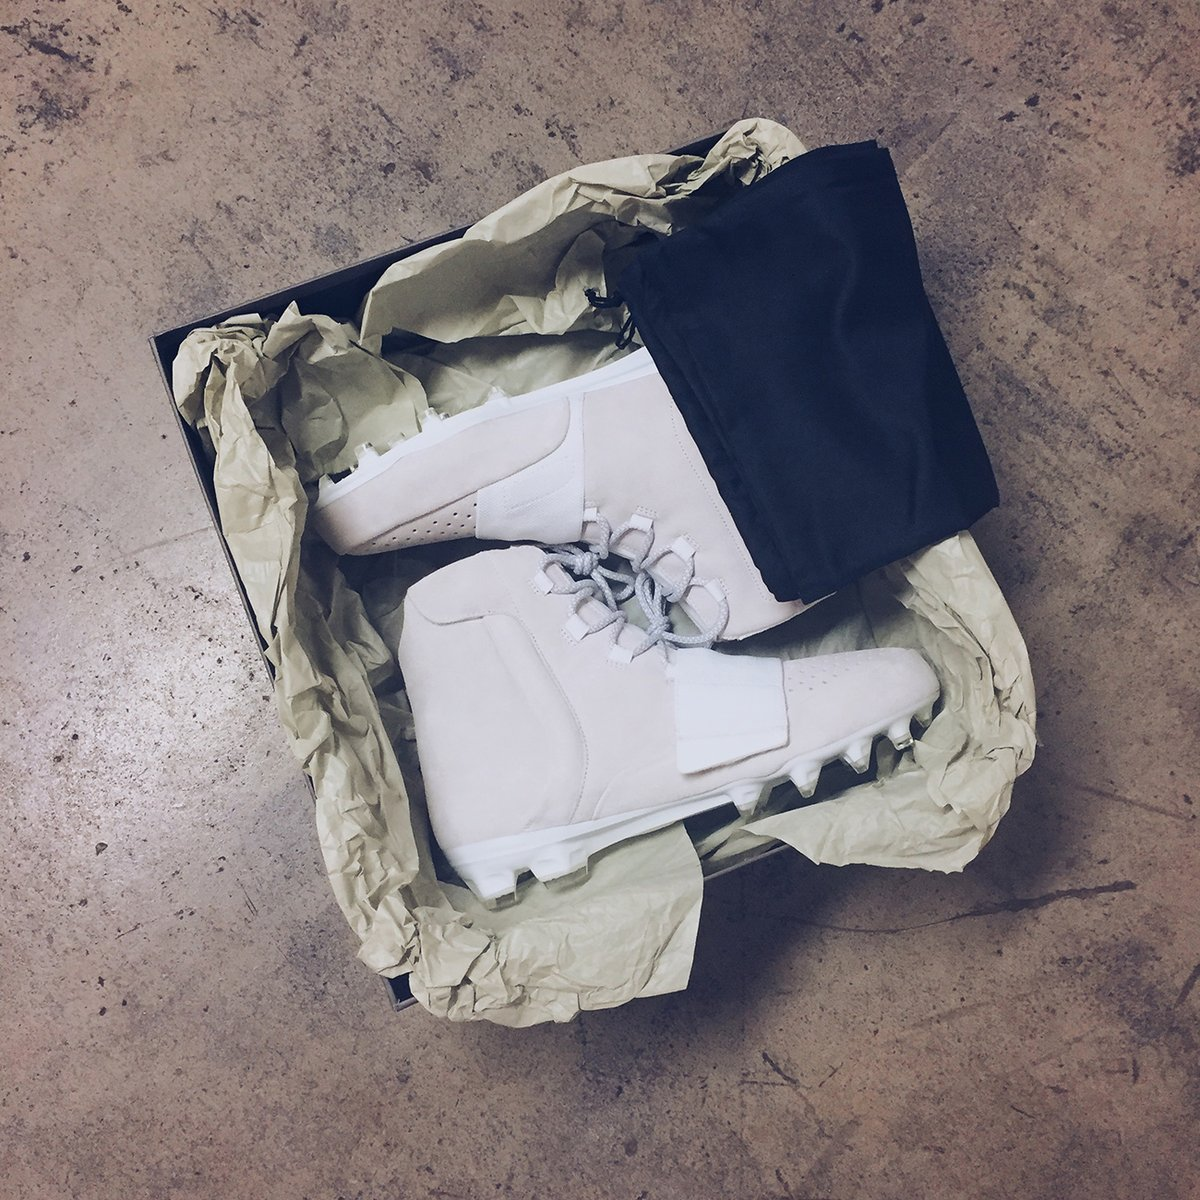 349a22e199f66 Kanye west blessed von miller with adidas yeezy boost cleats (via   millerlite40)